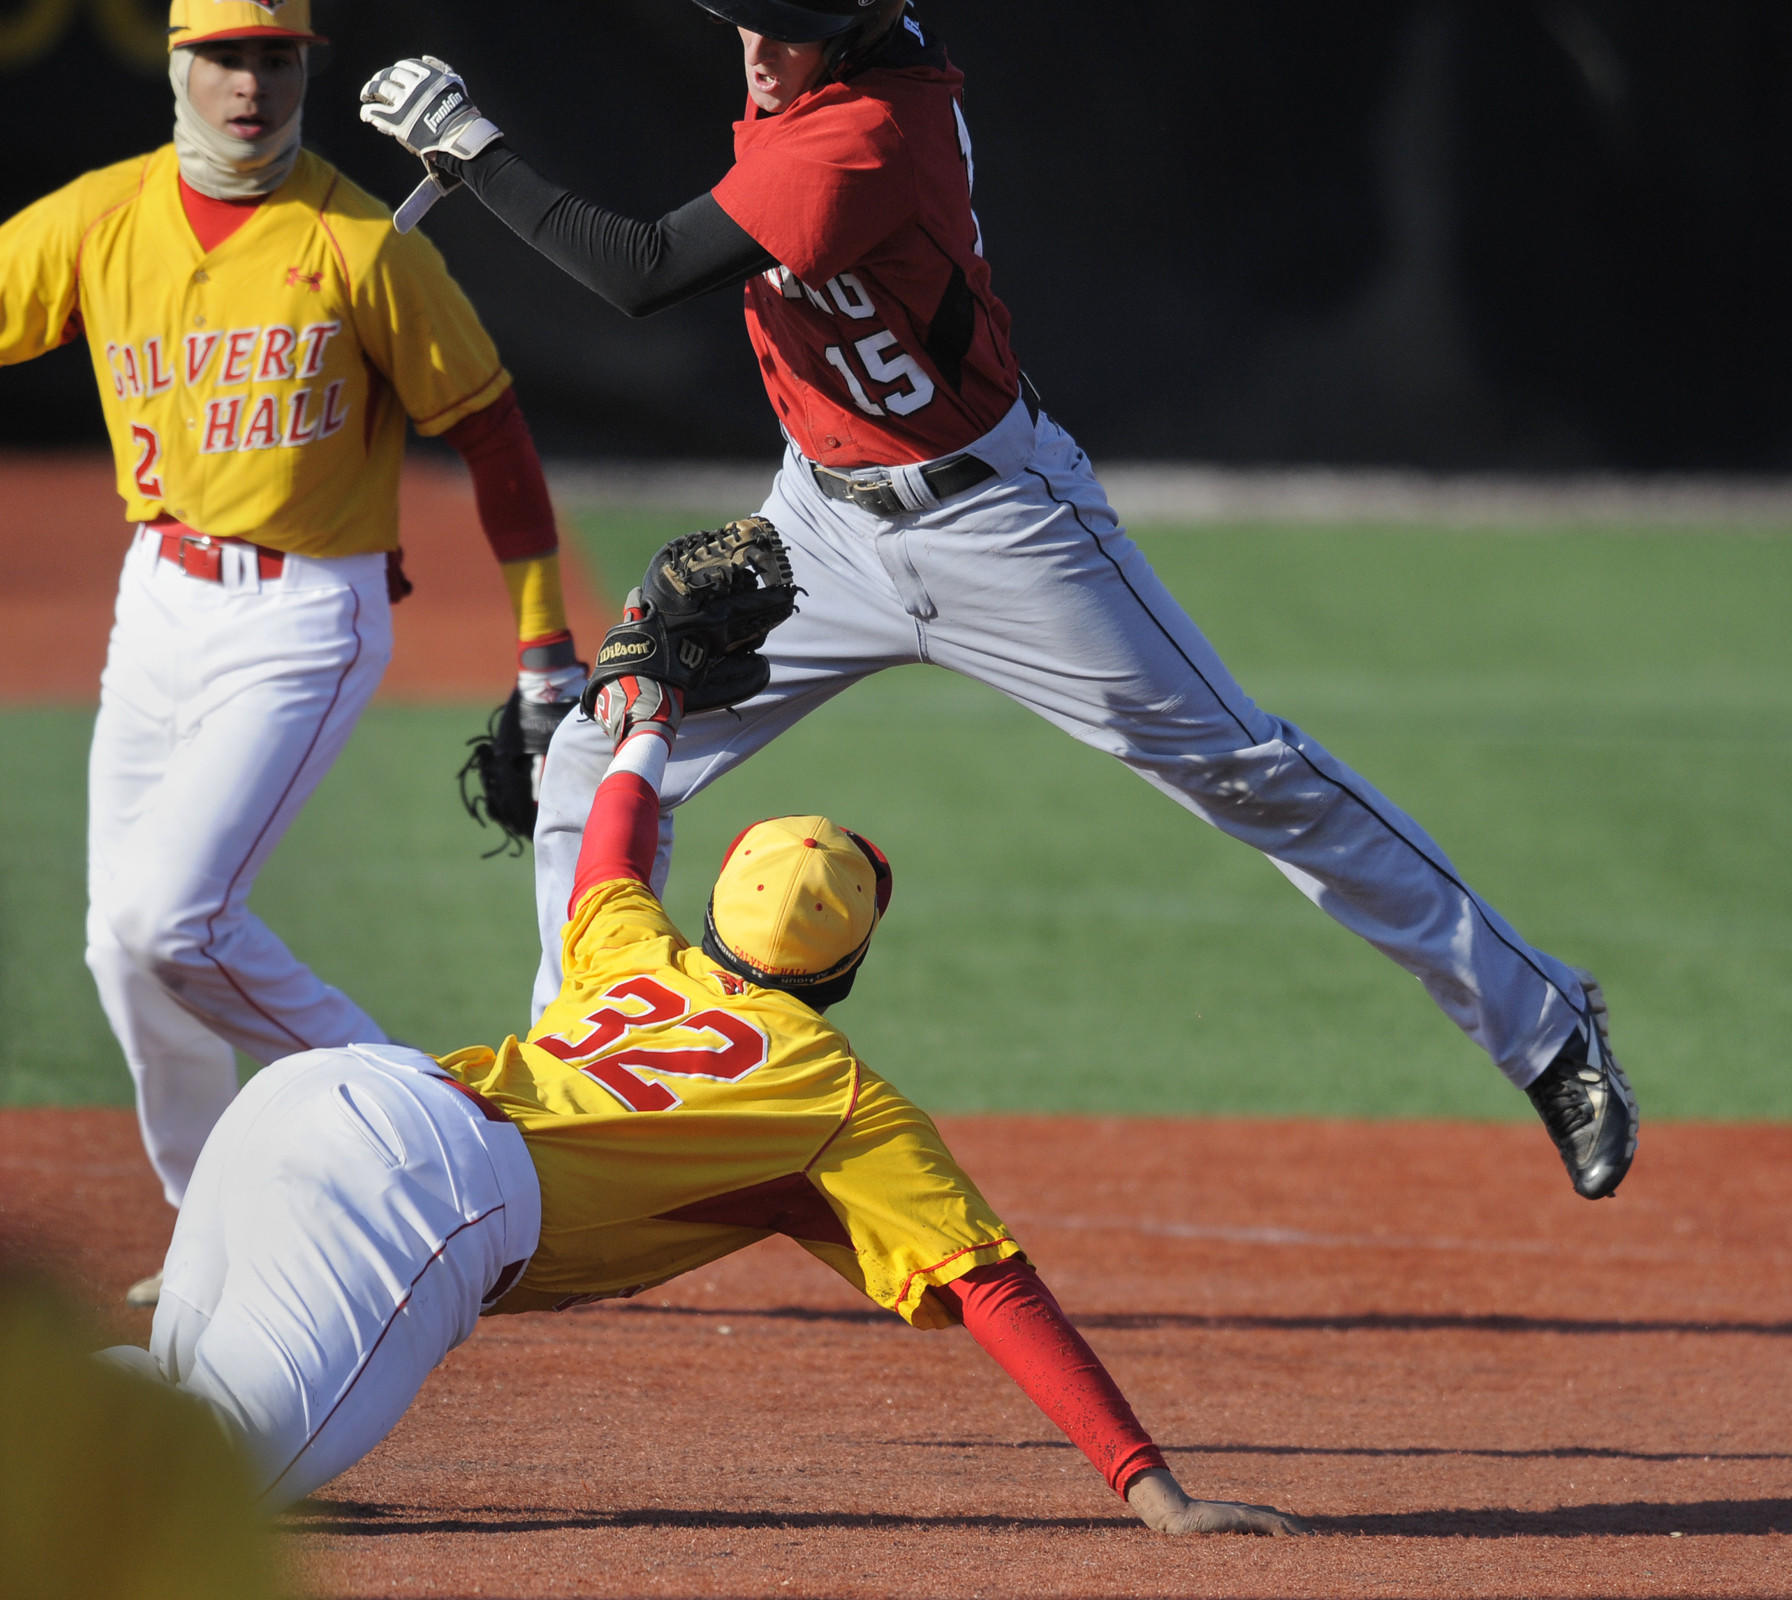 Calvert Hall third baseman Brandon Dorsey is unable to tag out Spalding's Ryan Hunt as Hunt avoids the tag at third during the third inning.